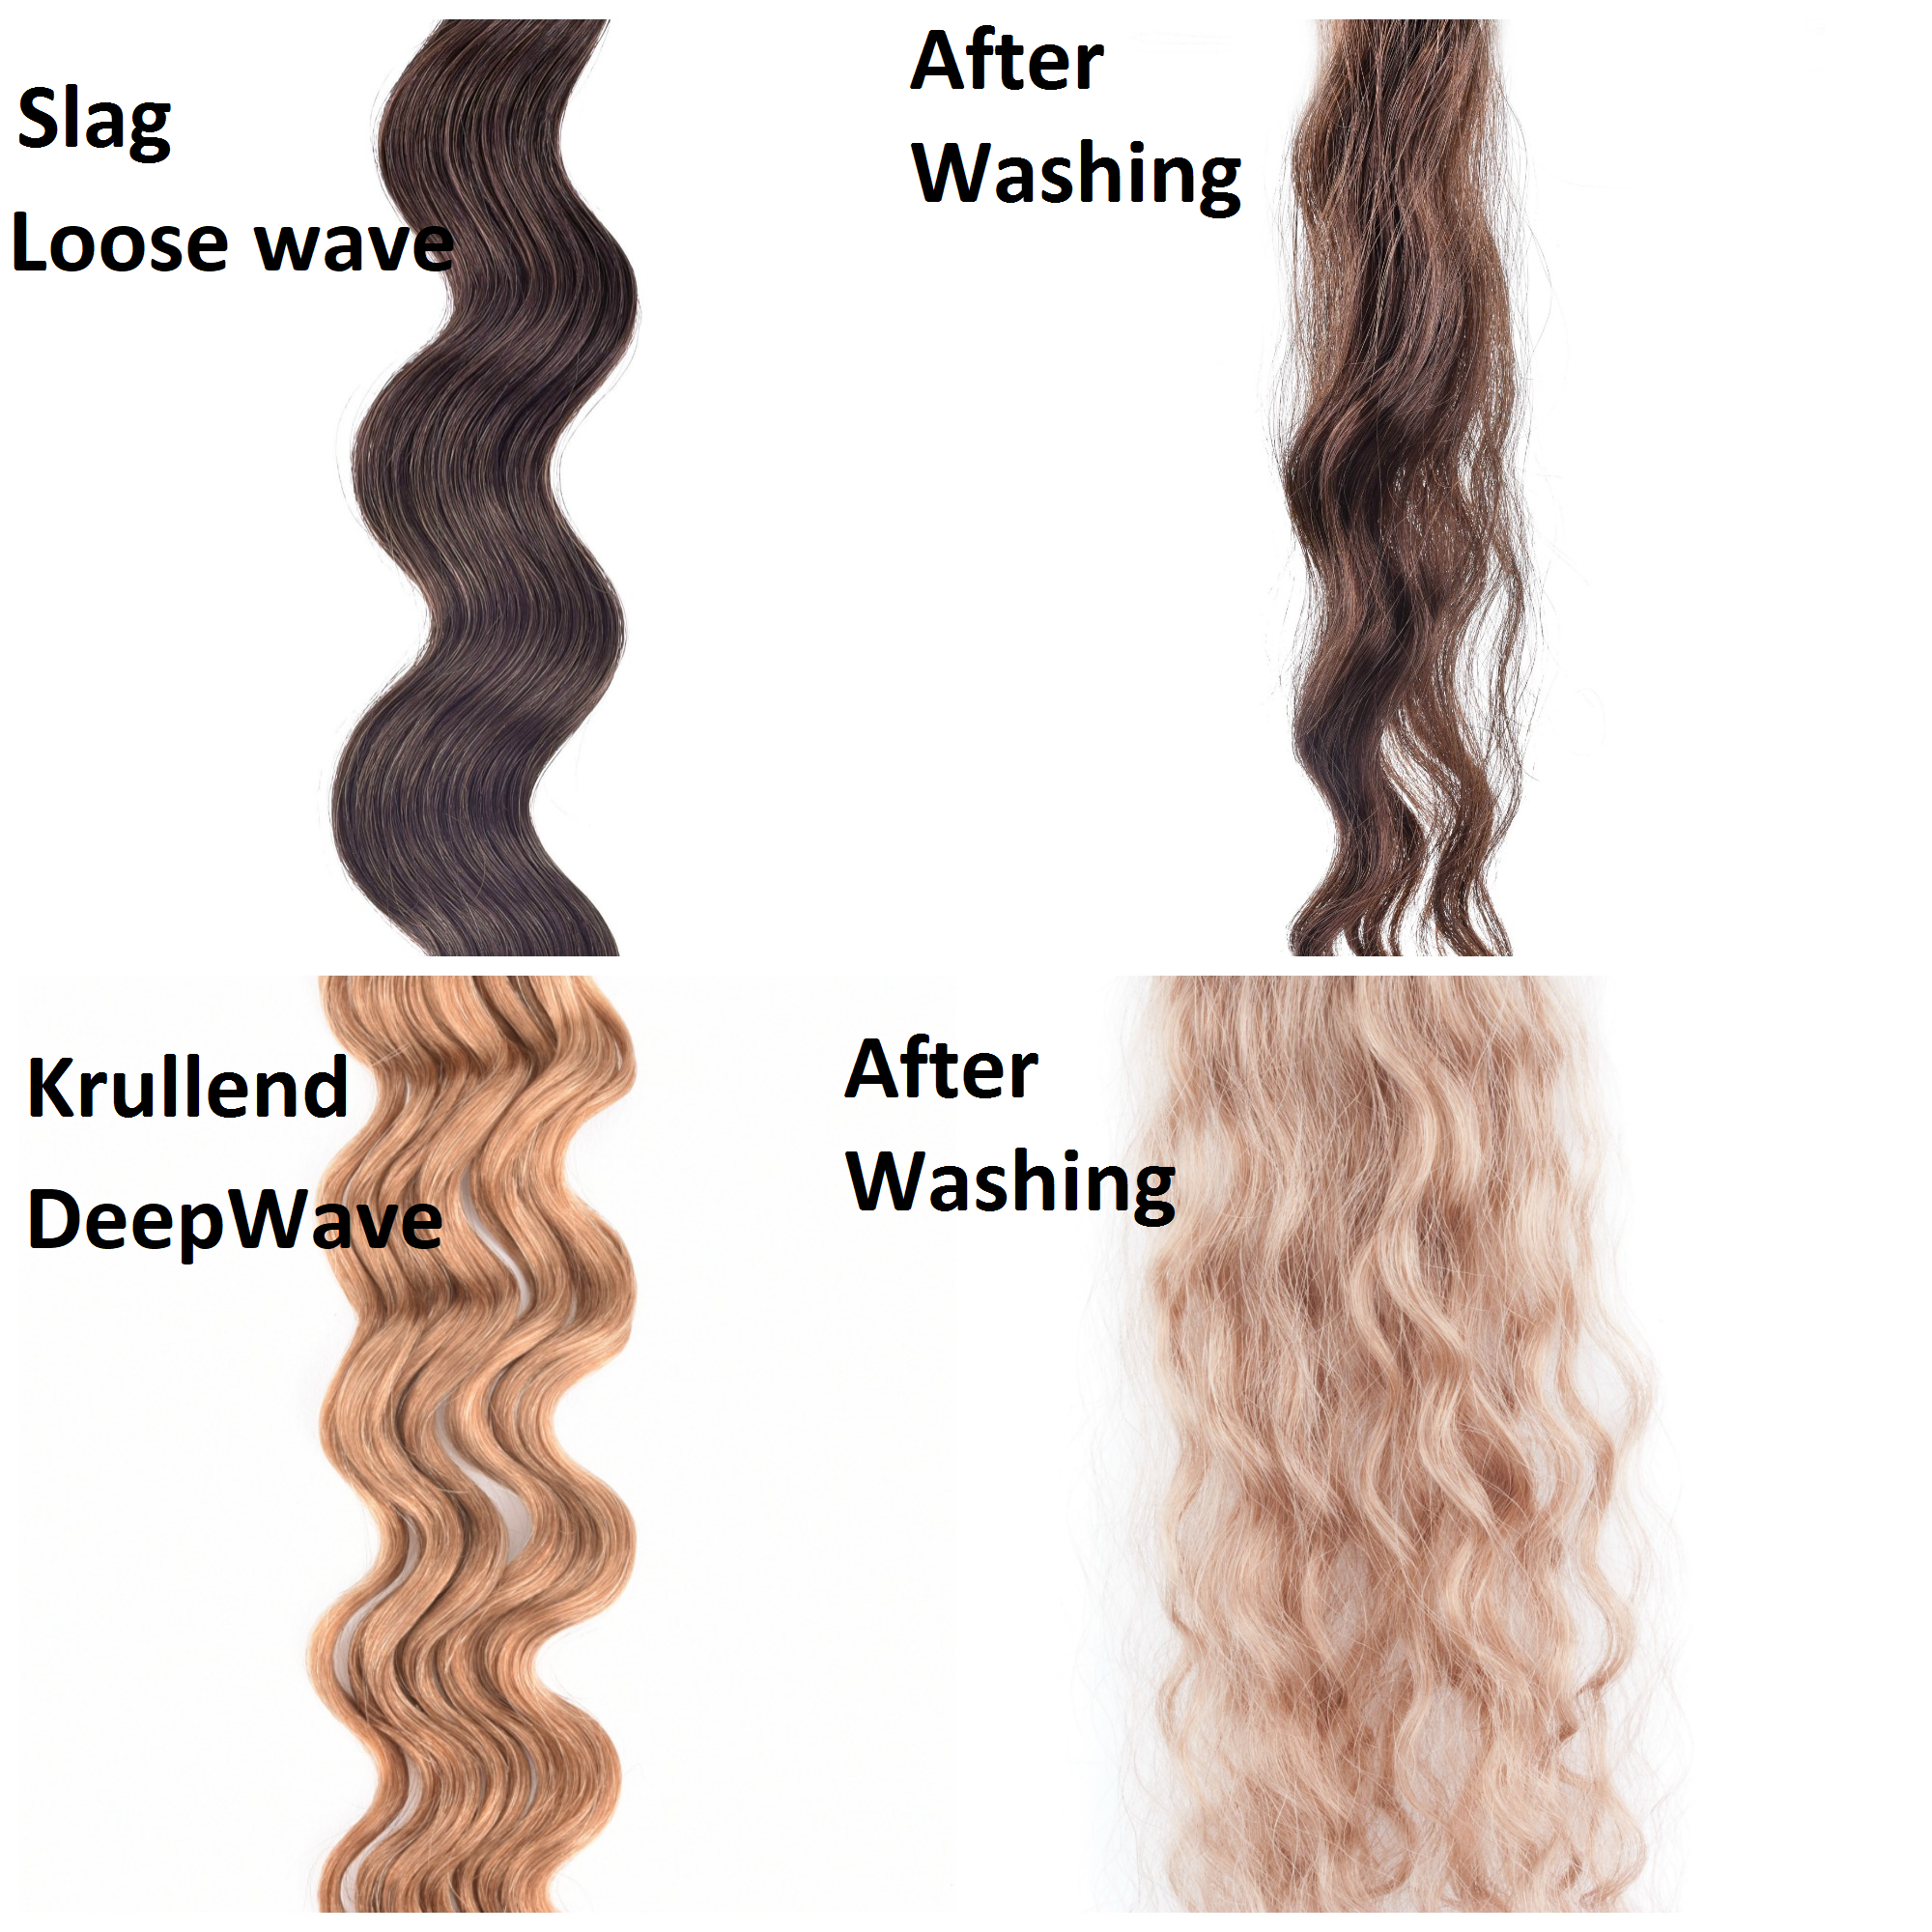 SilverFox Wax Extensions Loose Wave 55cm #F9 Olive Brown